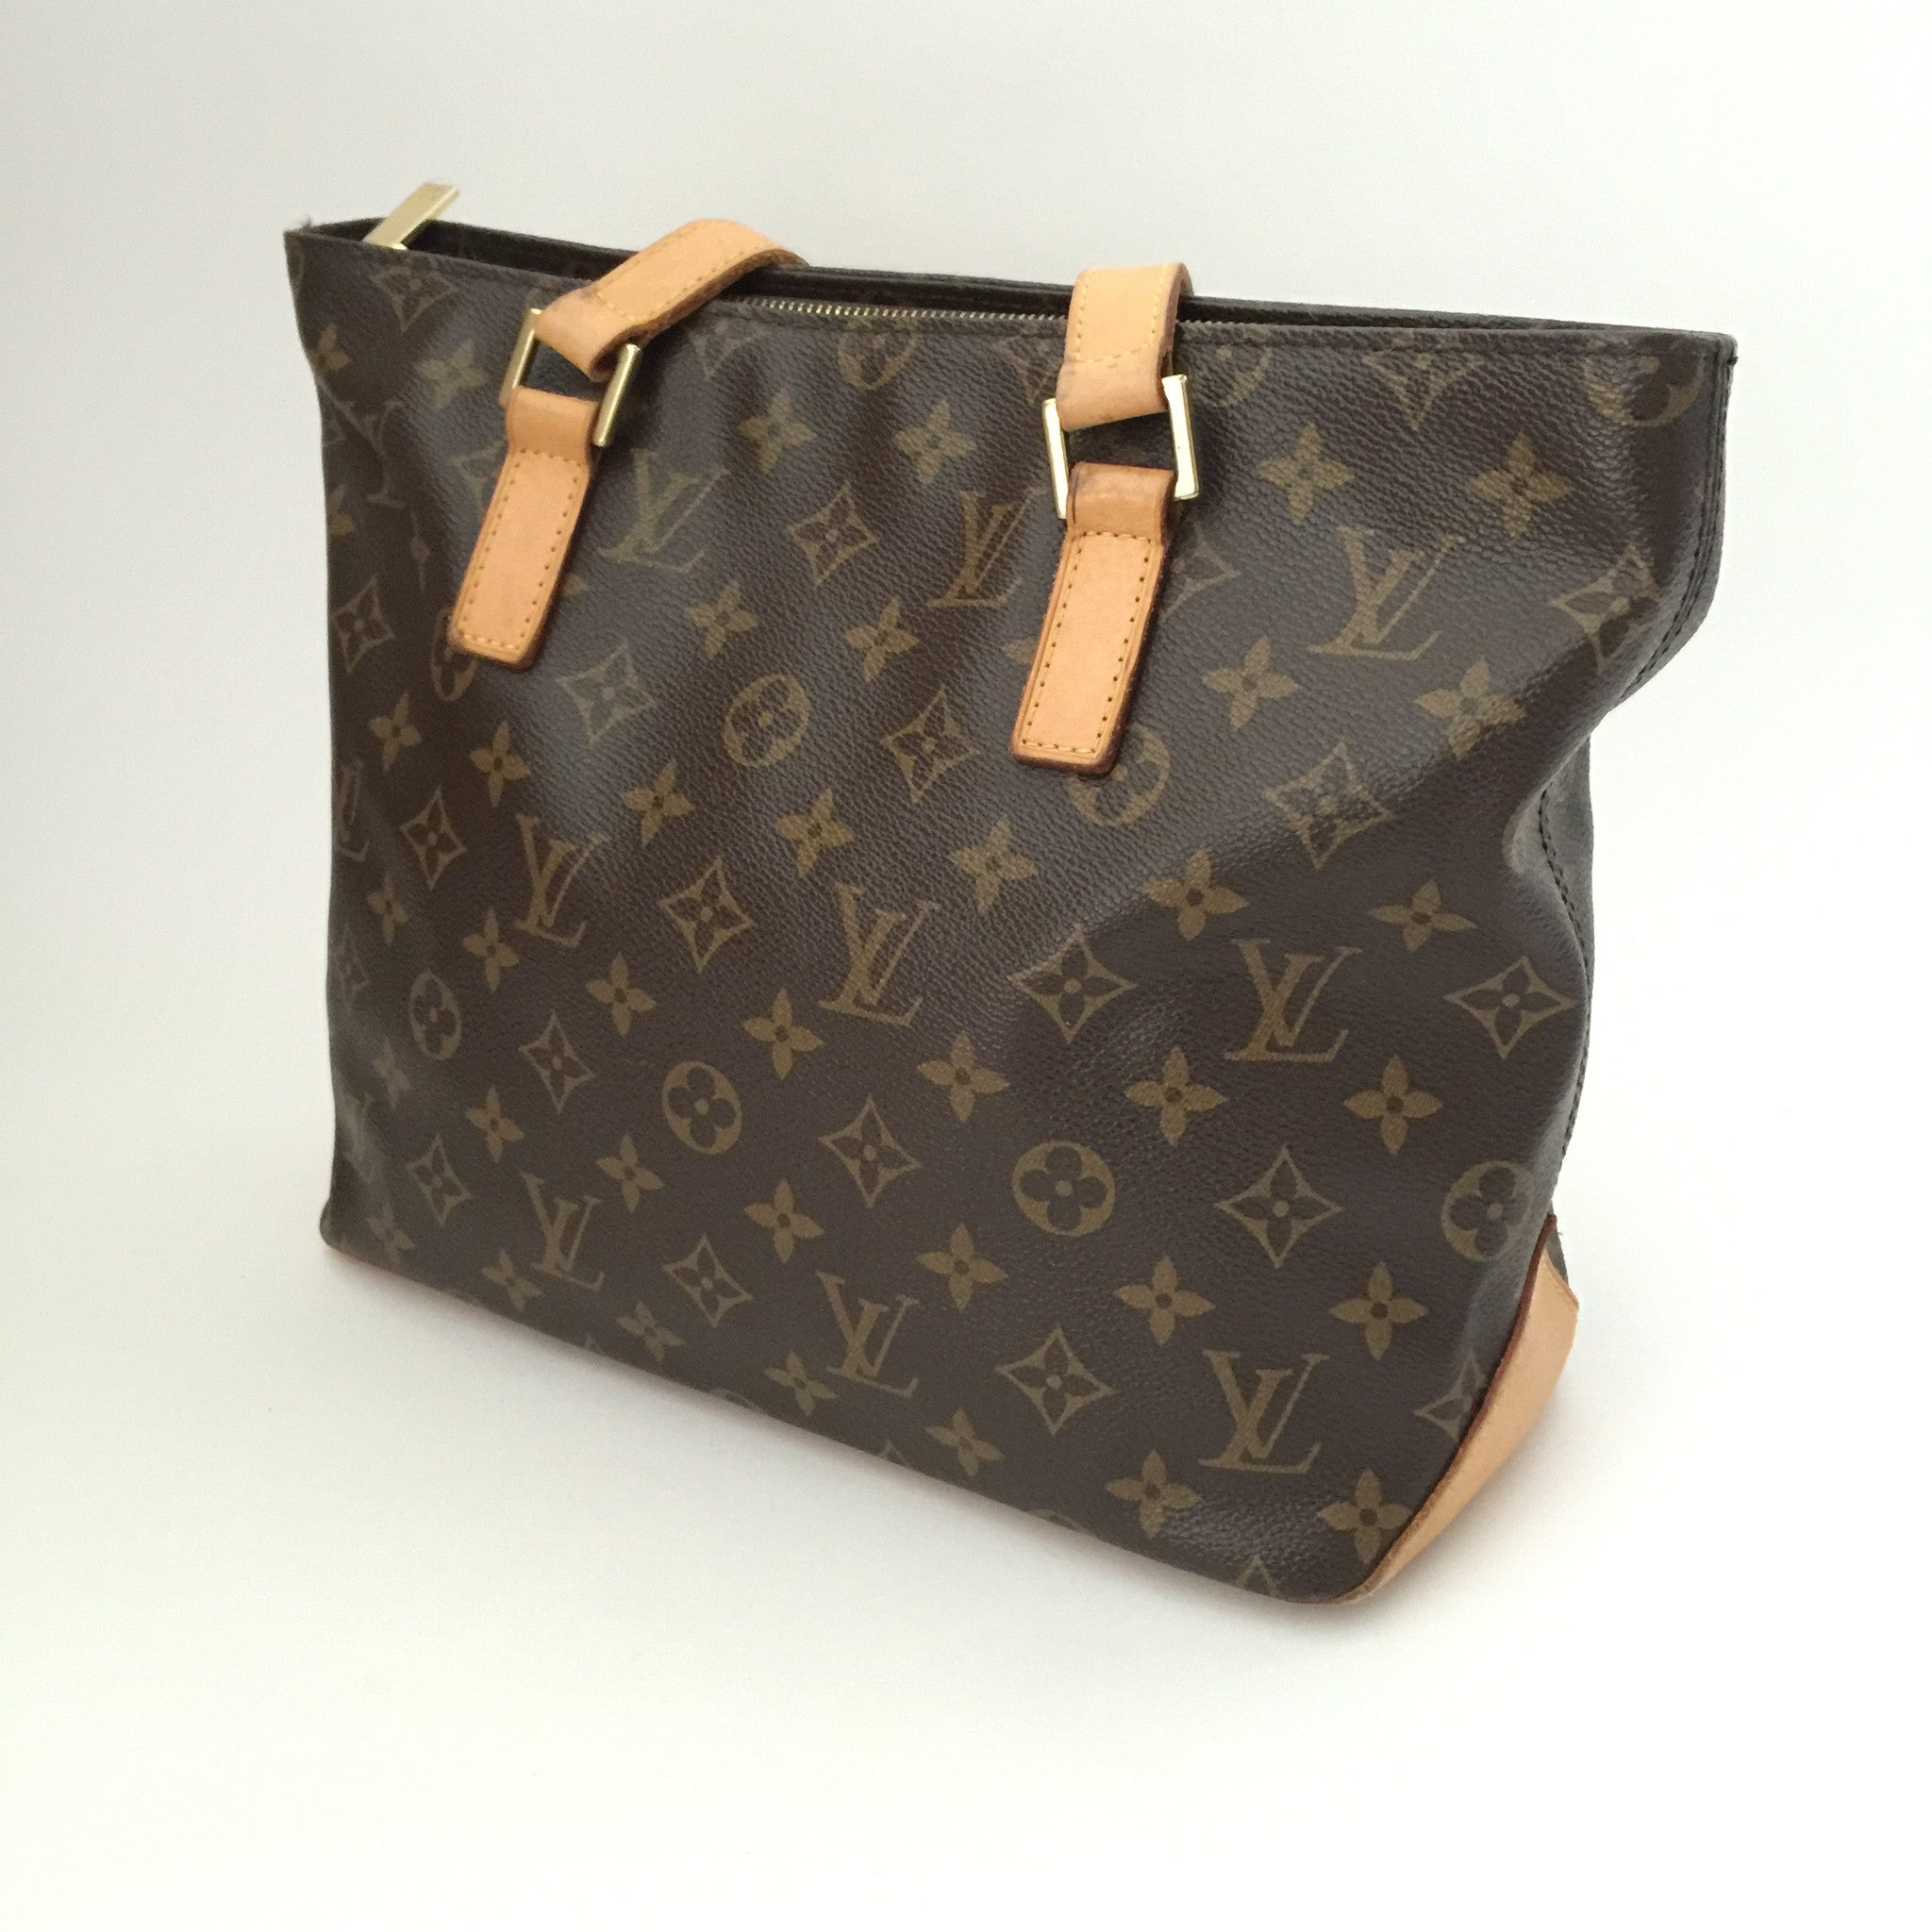 Authentic LOUIS VUITTON Cabas PM Tote